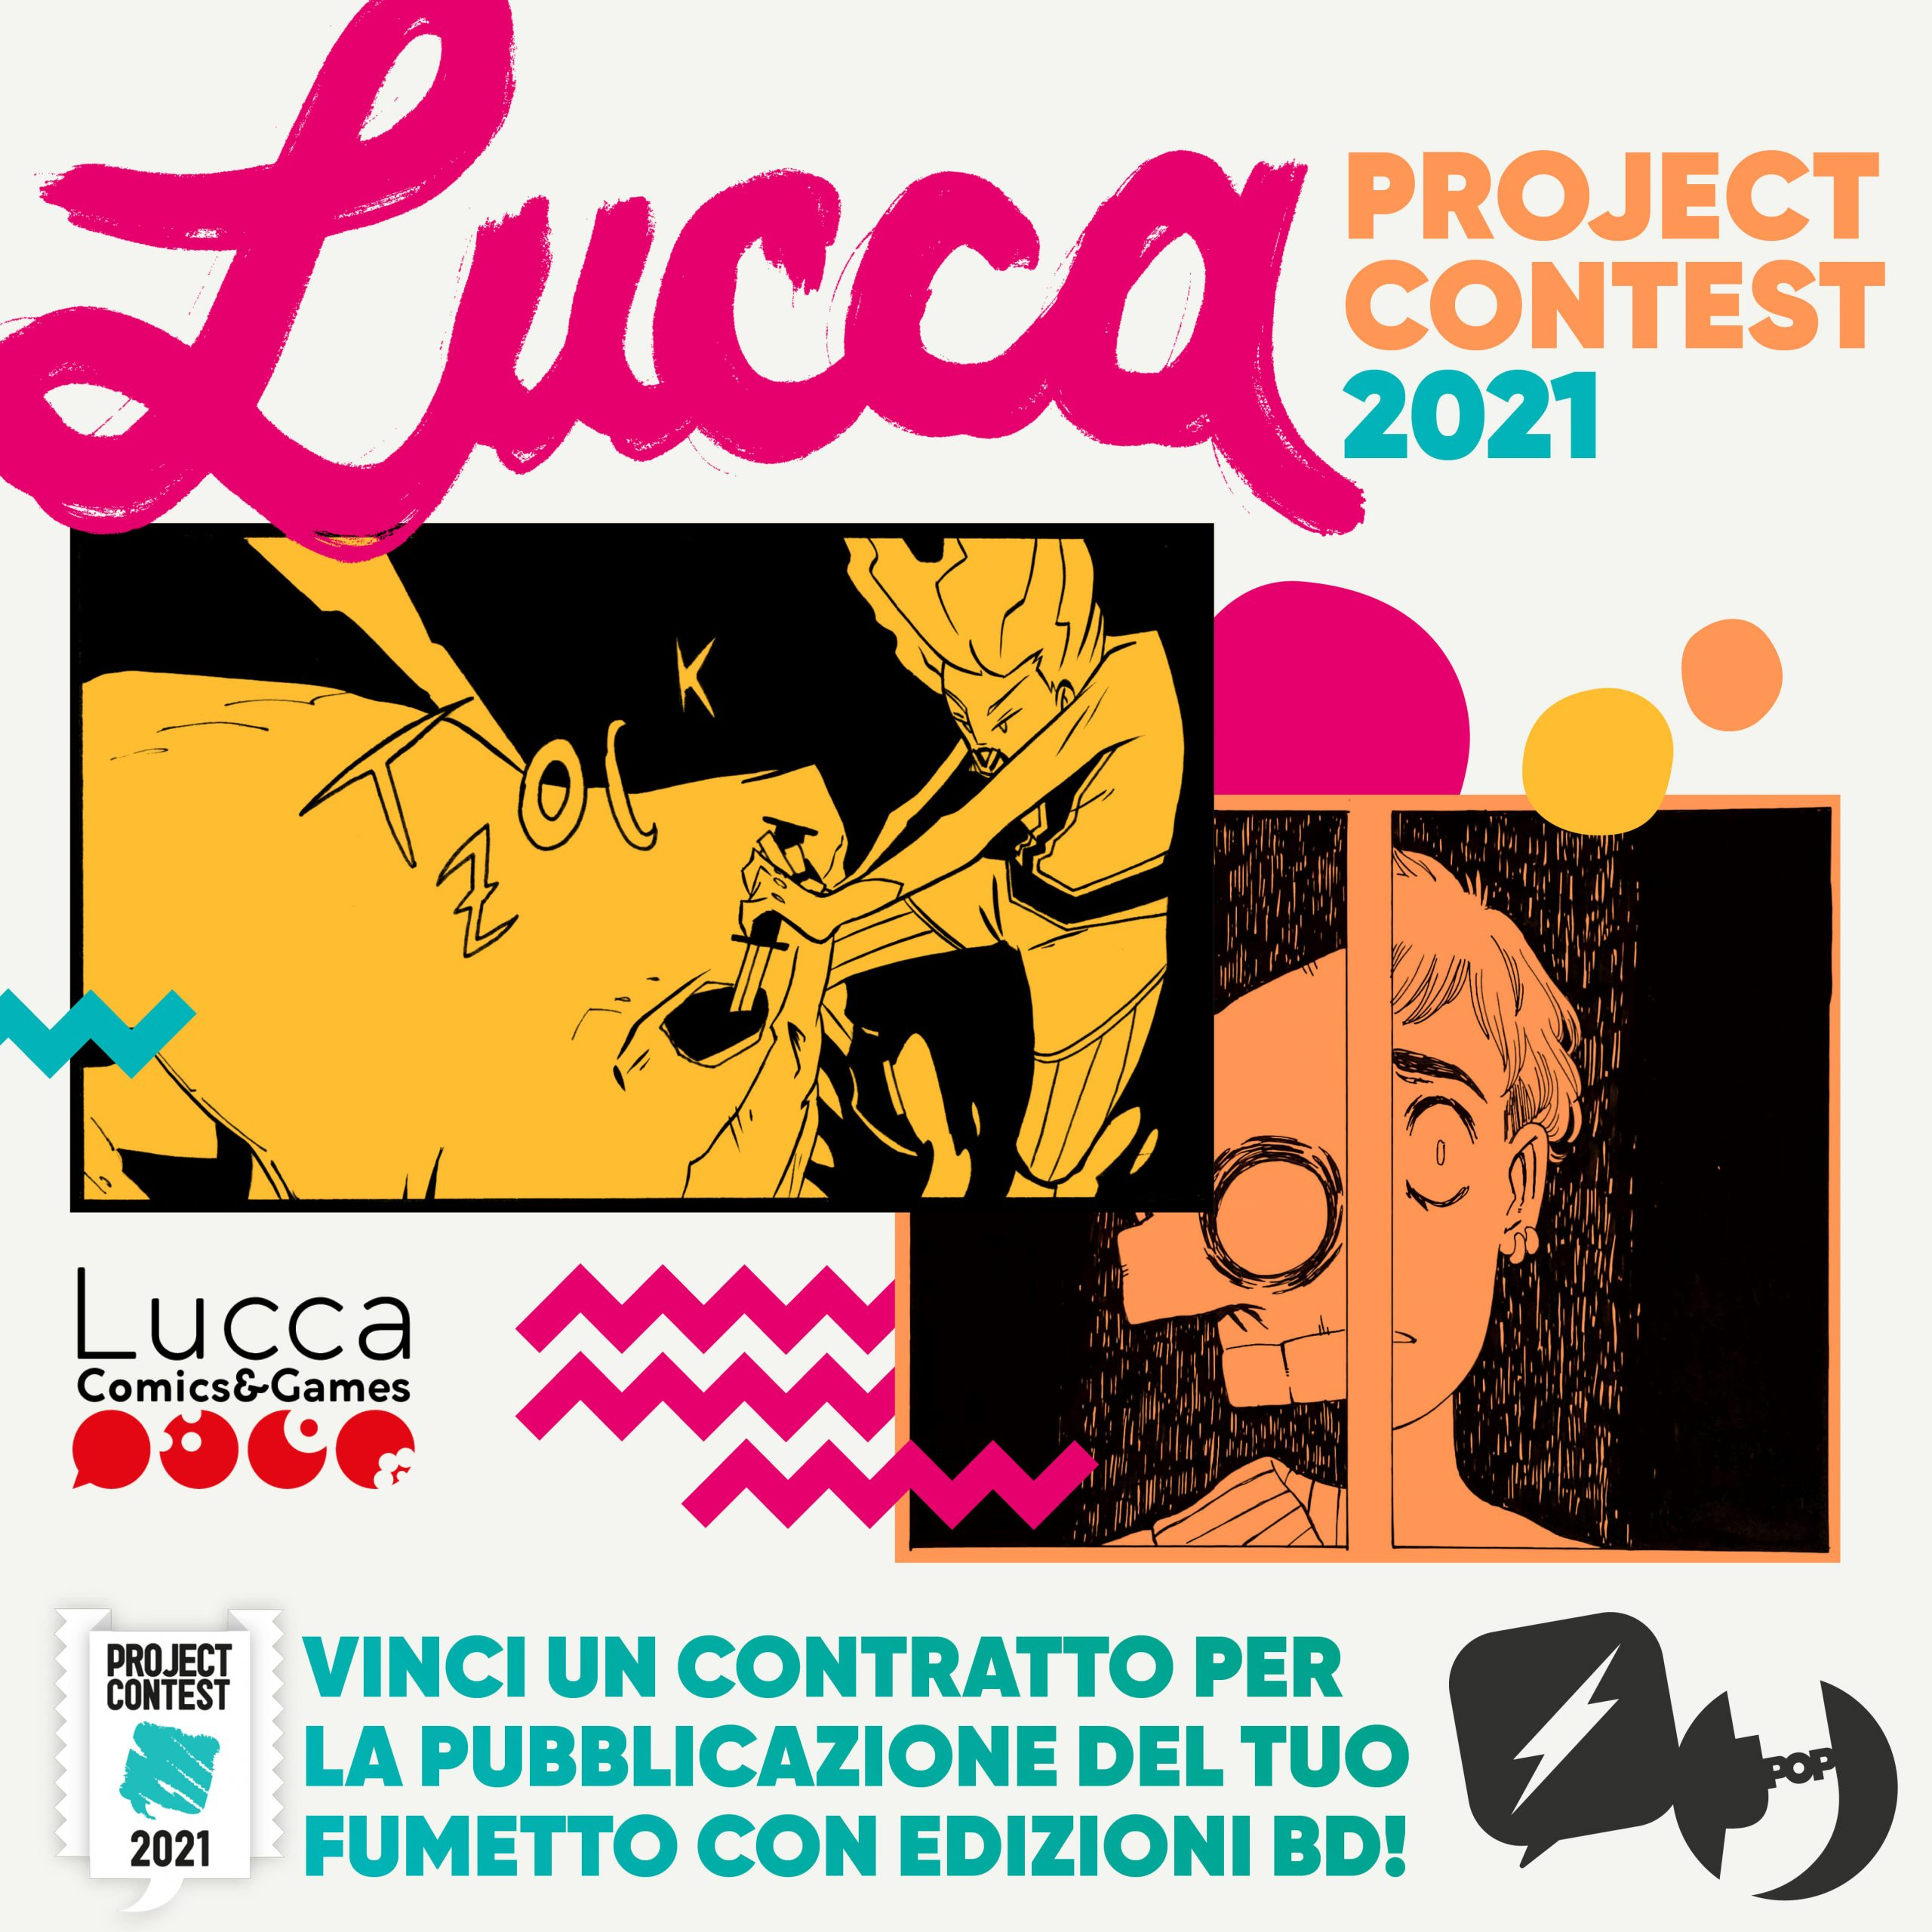 www.luccaprojectcontest.it